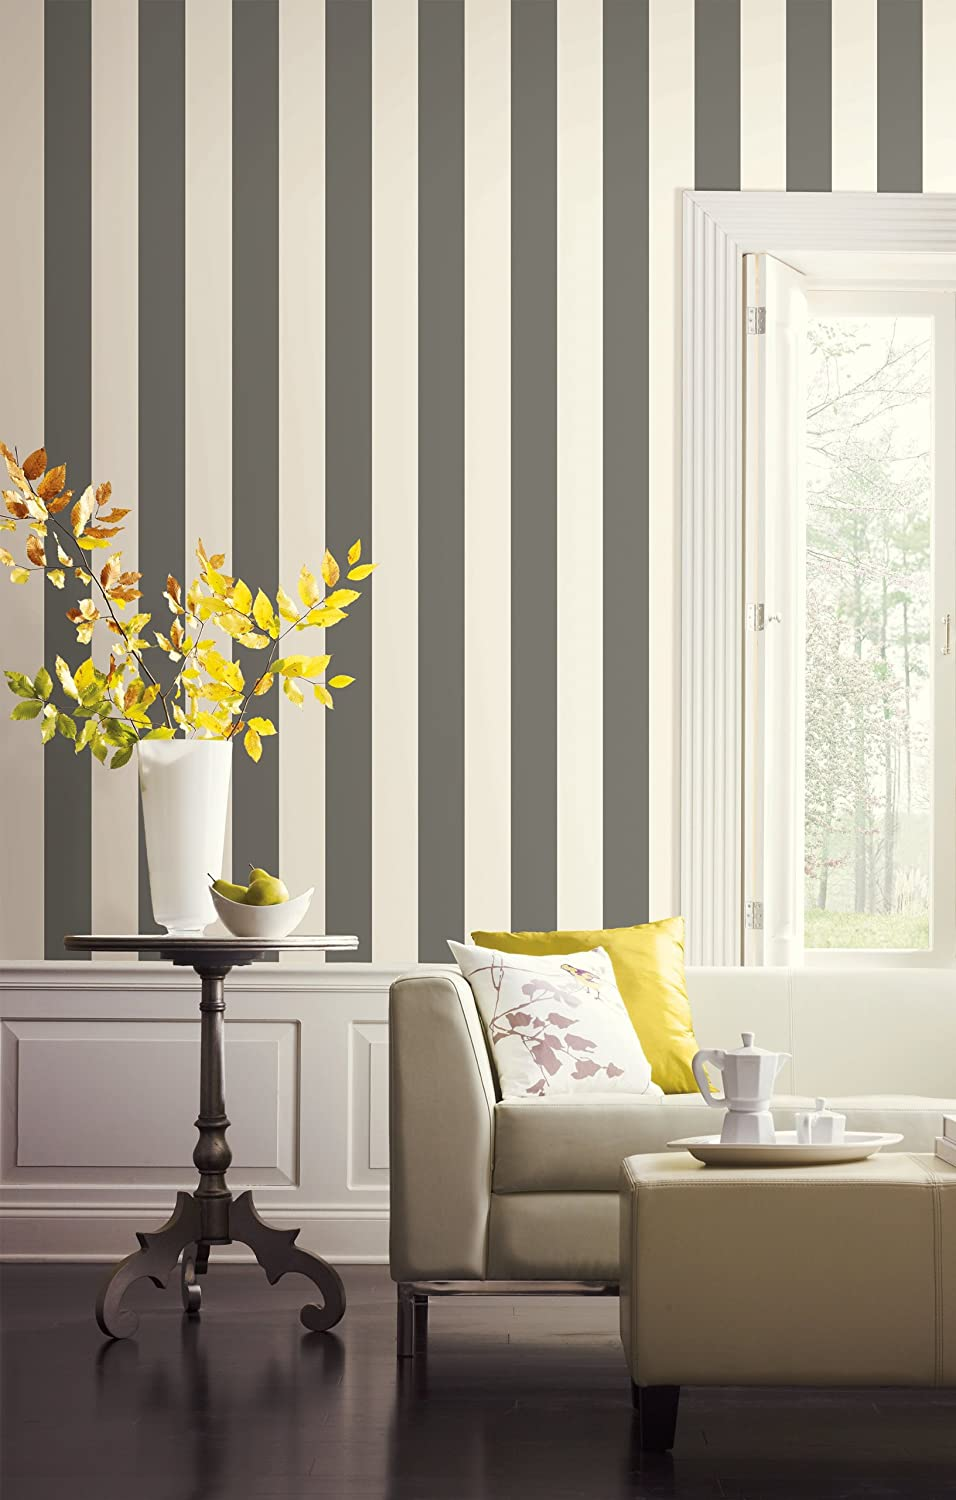 York Wallcoverings SA9175 Ashford Stripes 3 Inch Stripe Wallpaper,  Gray/White     Amazon.com Part 73